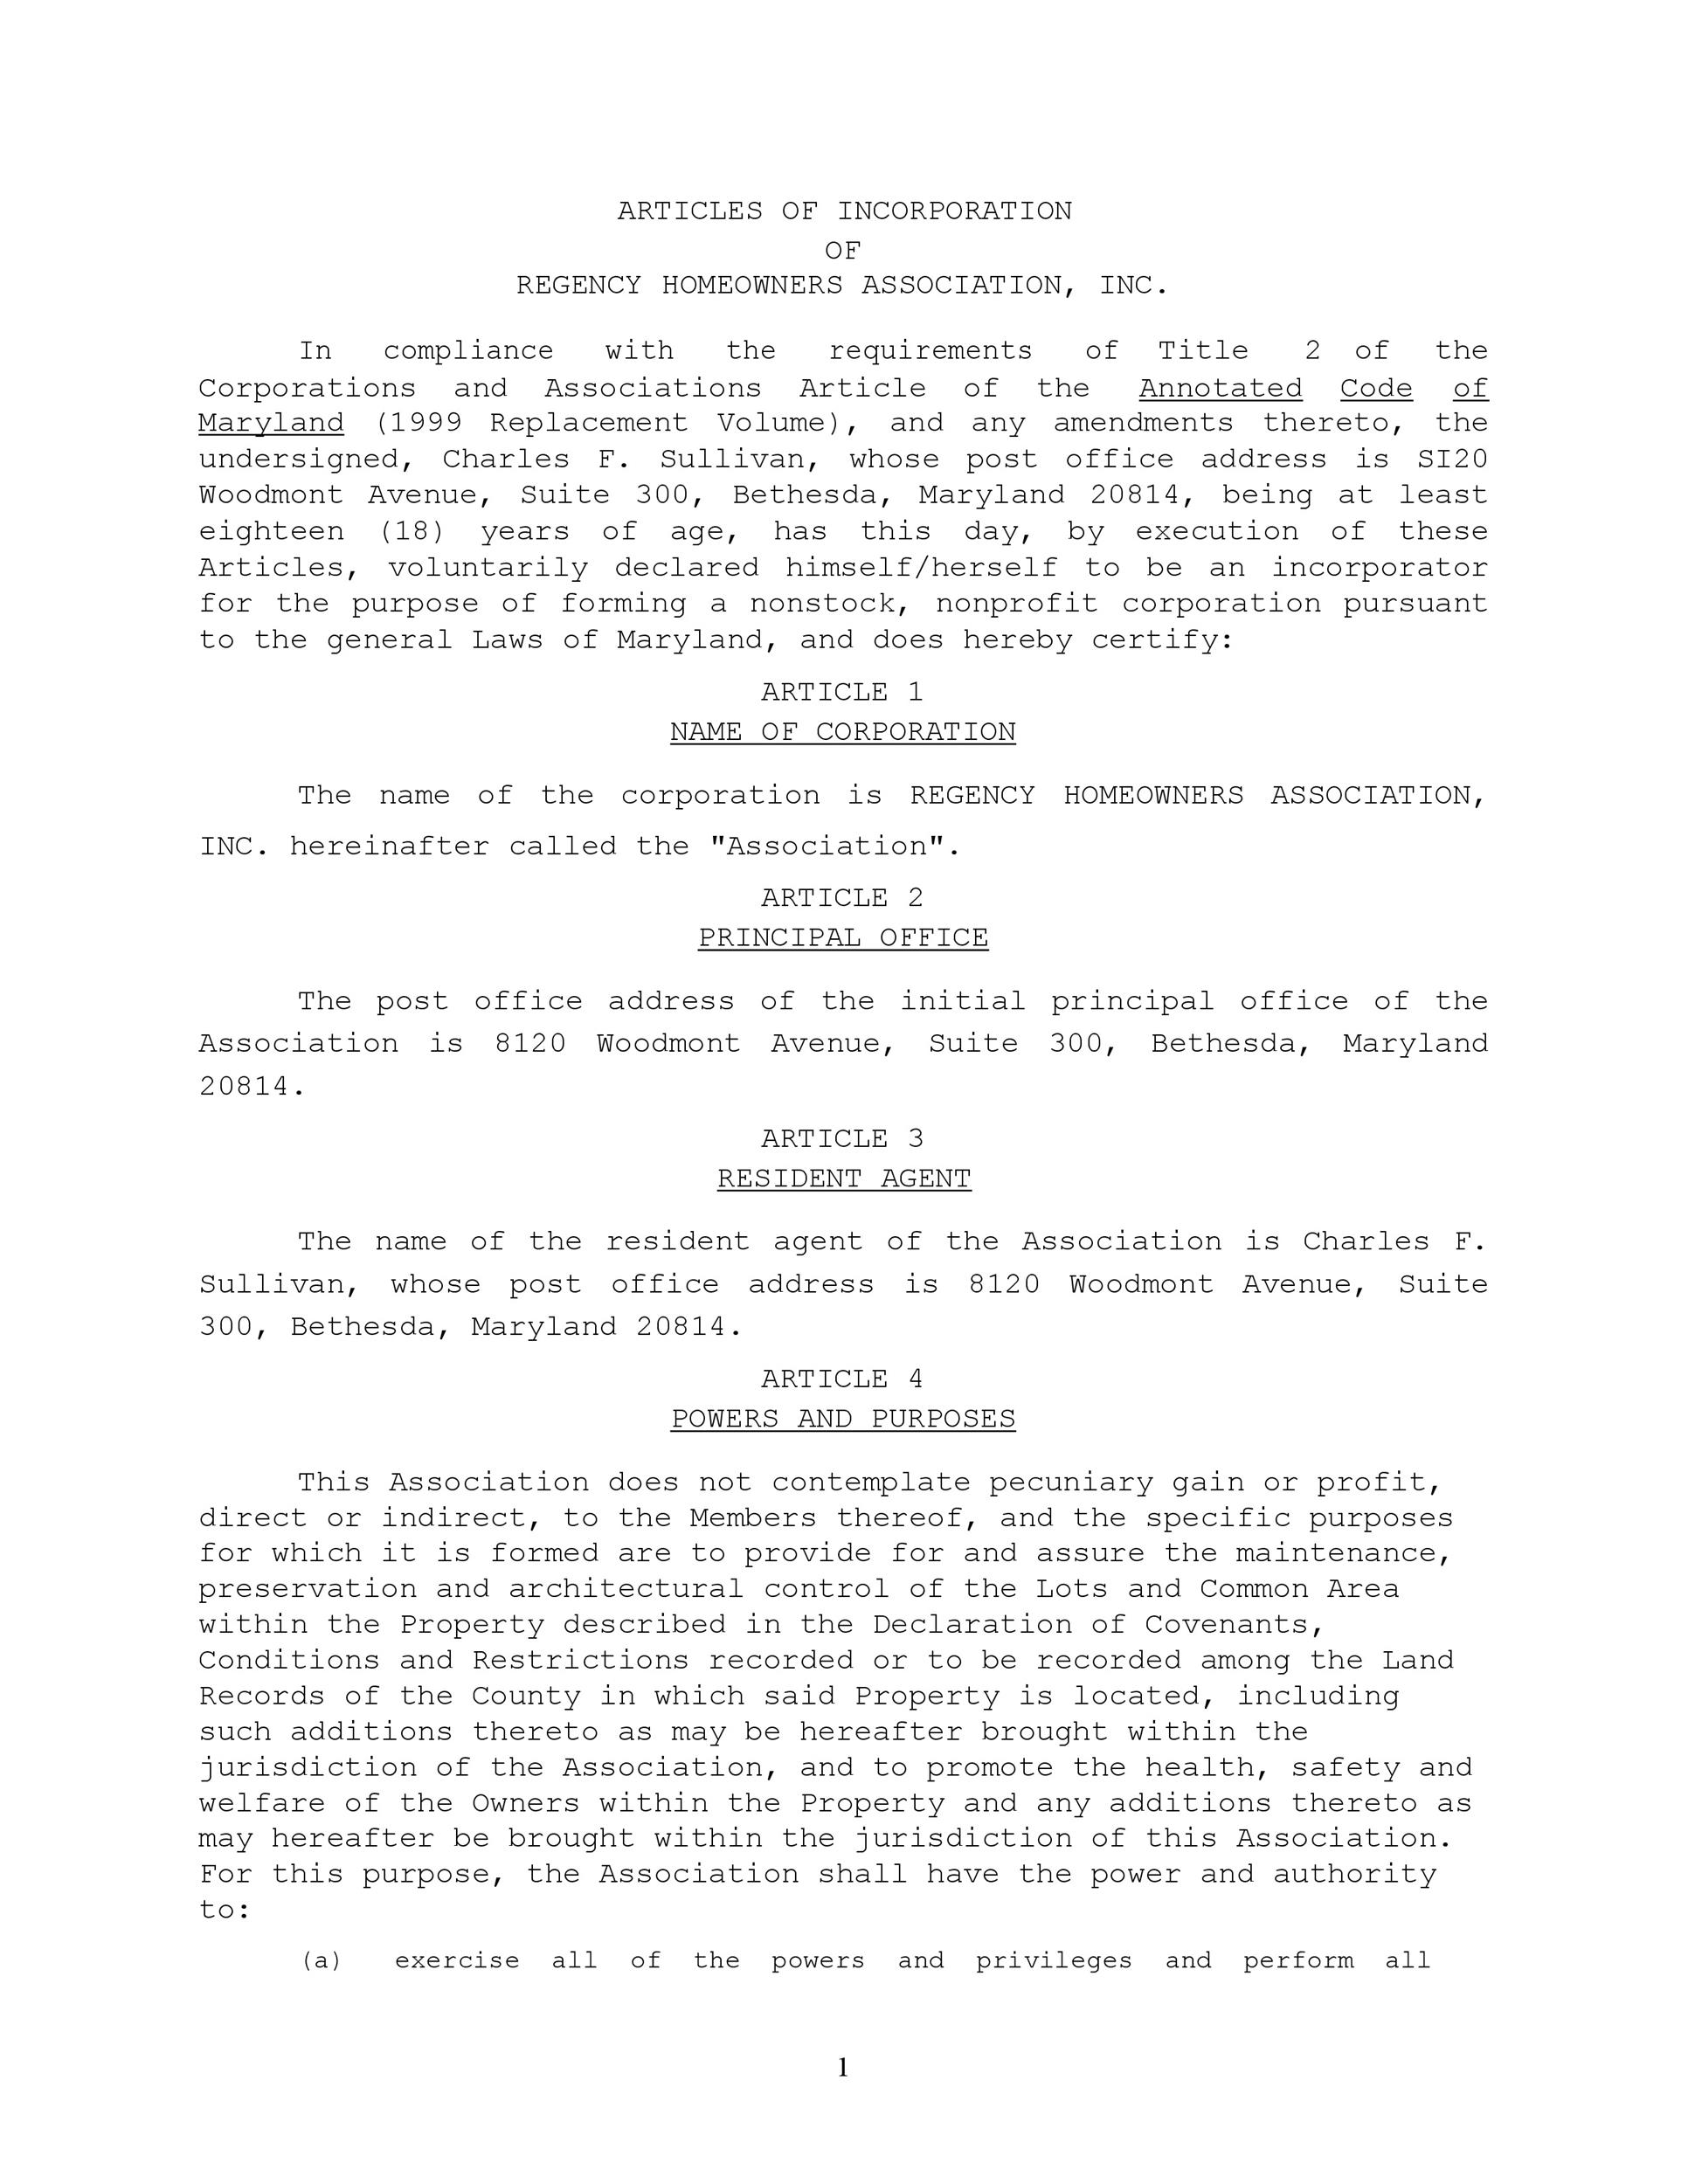 Free articles of incorporation template 44